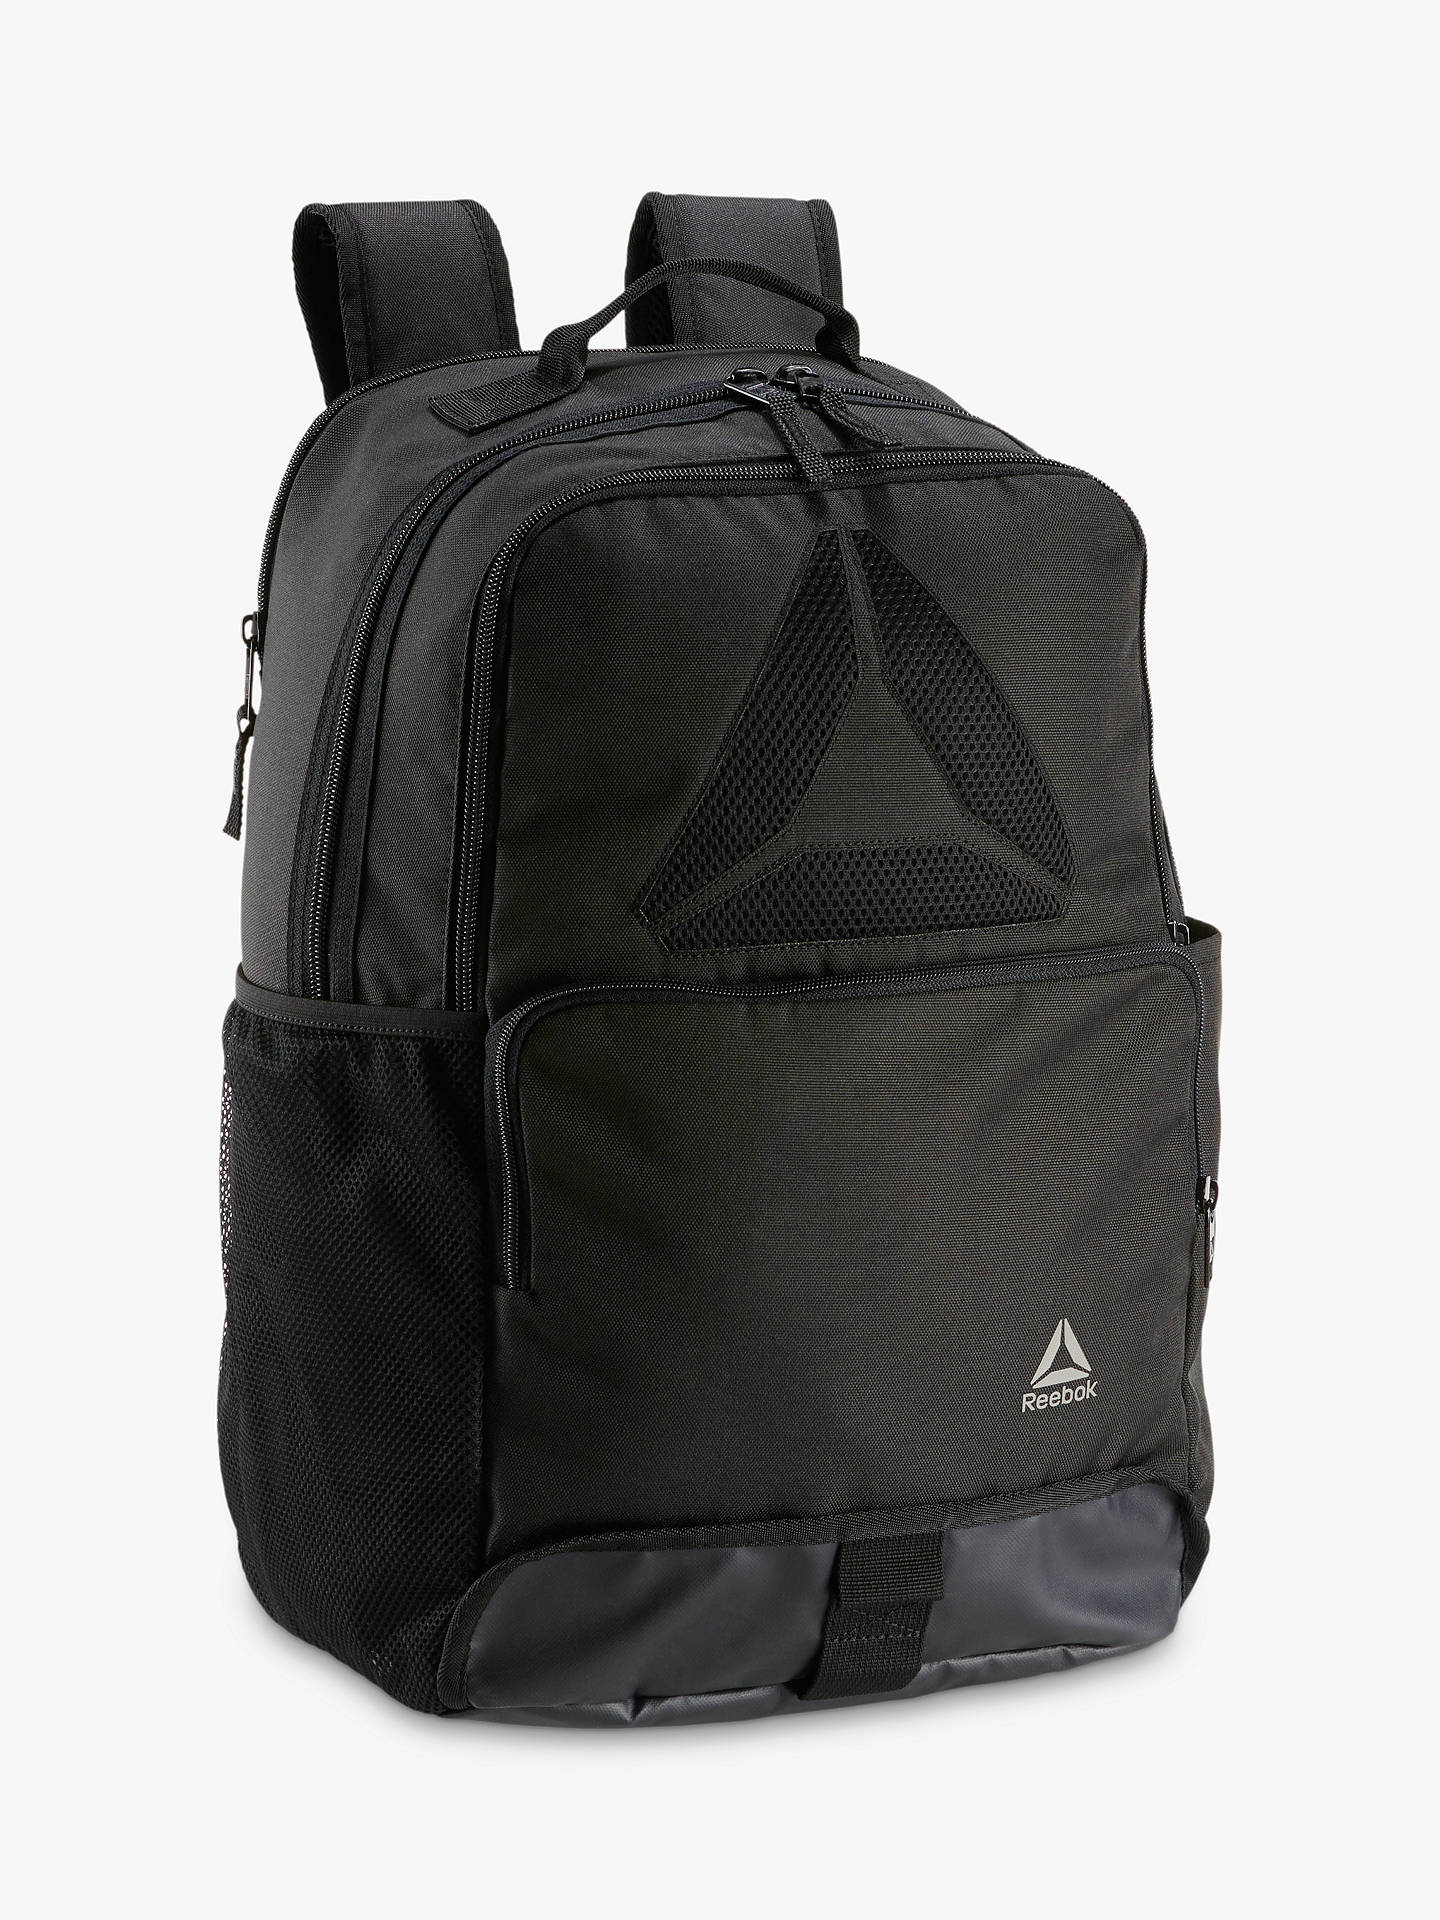 04308ec24a76ca Buy Reebok Active Enhanced Large Backpack